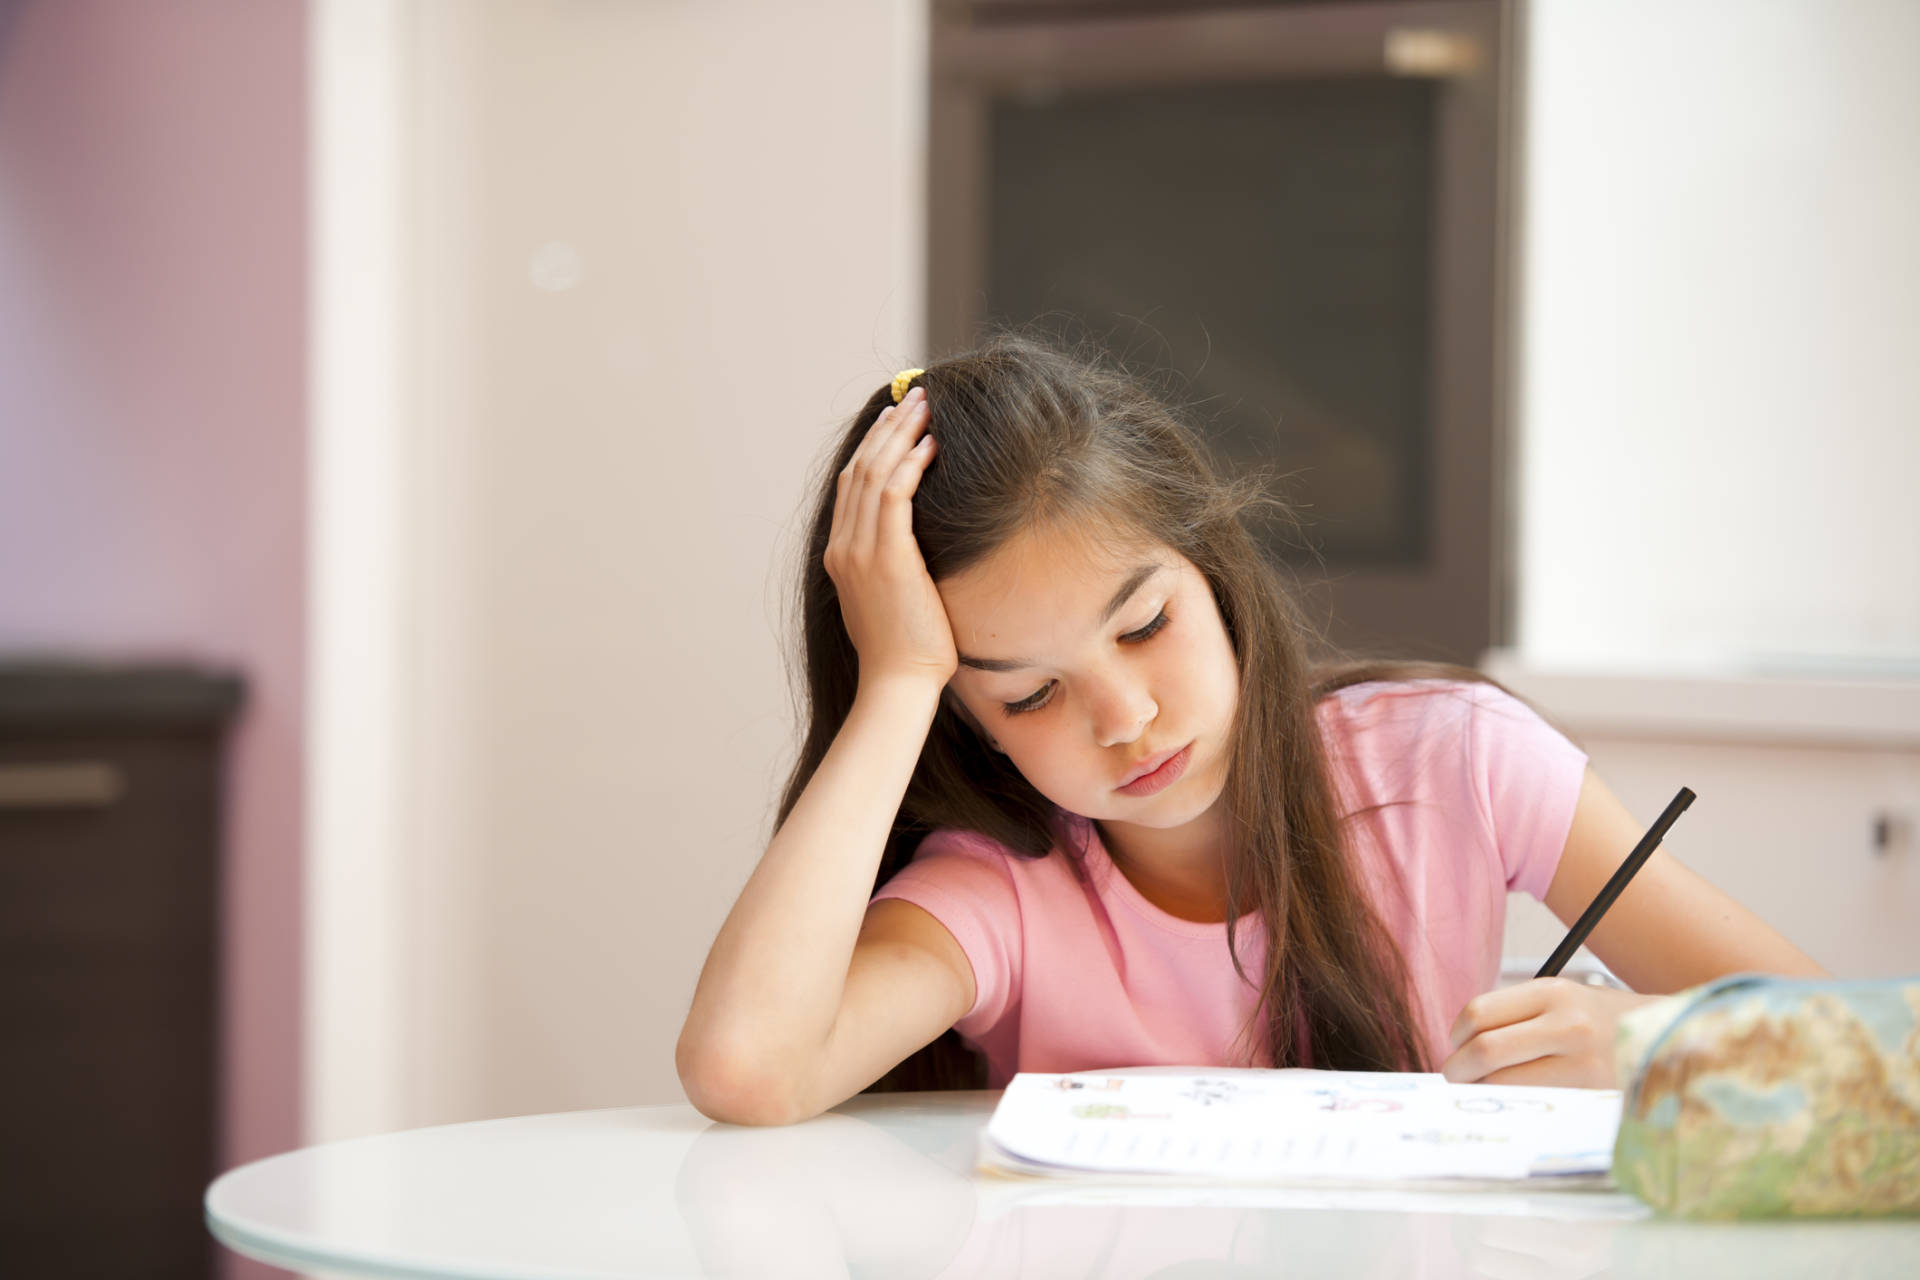 Three Things Overscheduled Kids Need More of in Their Lives